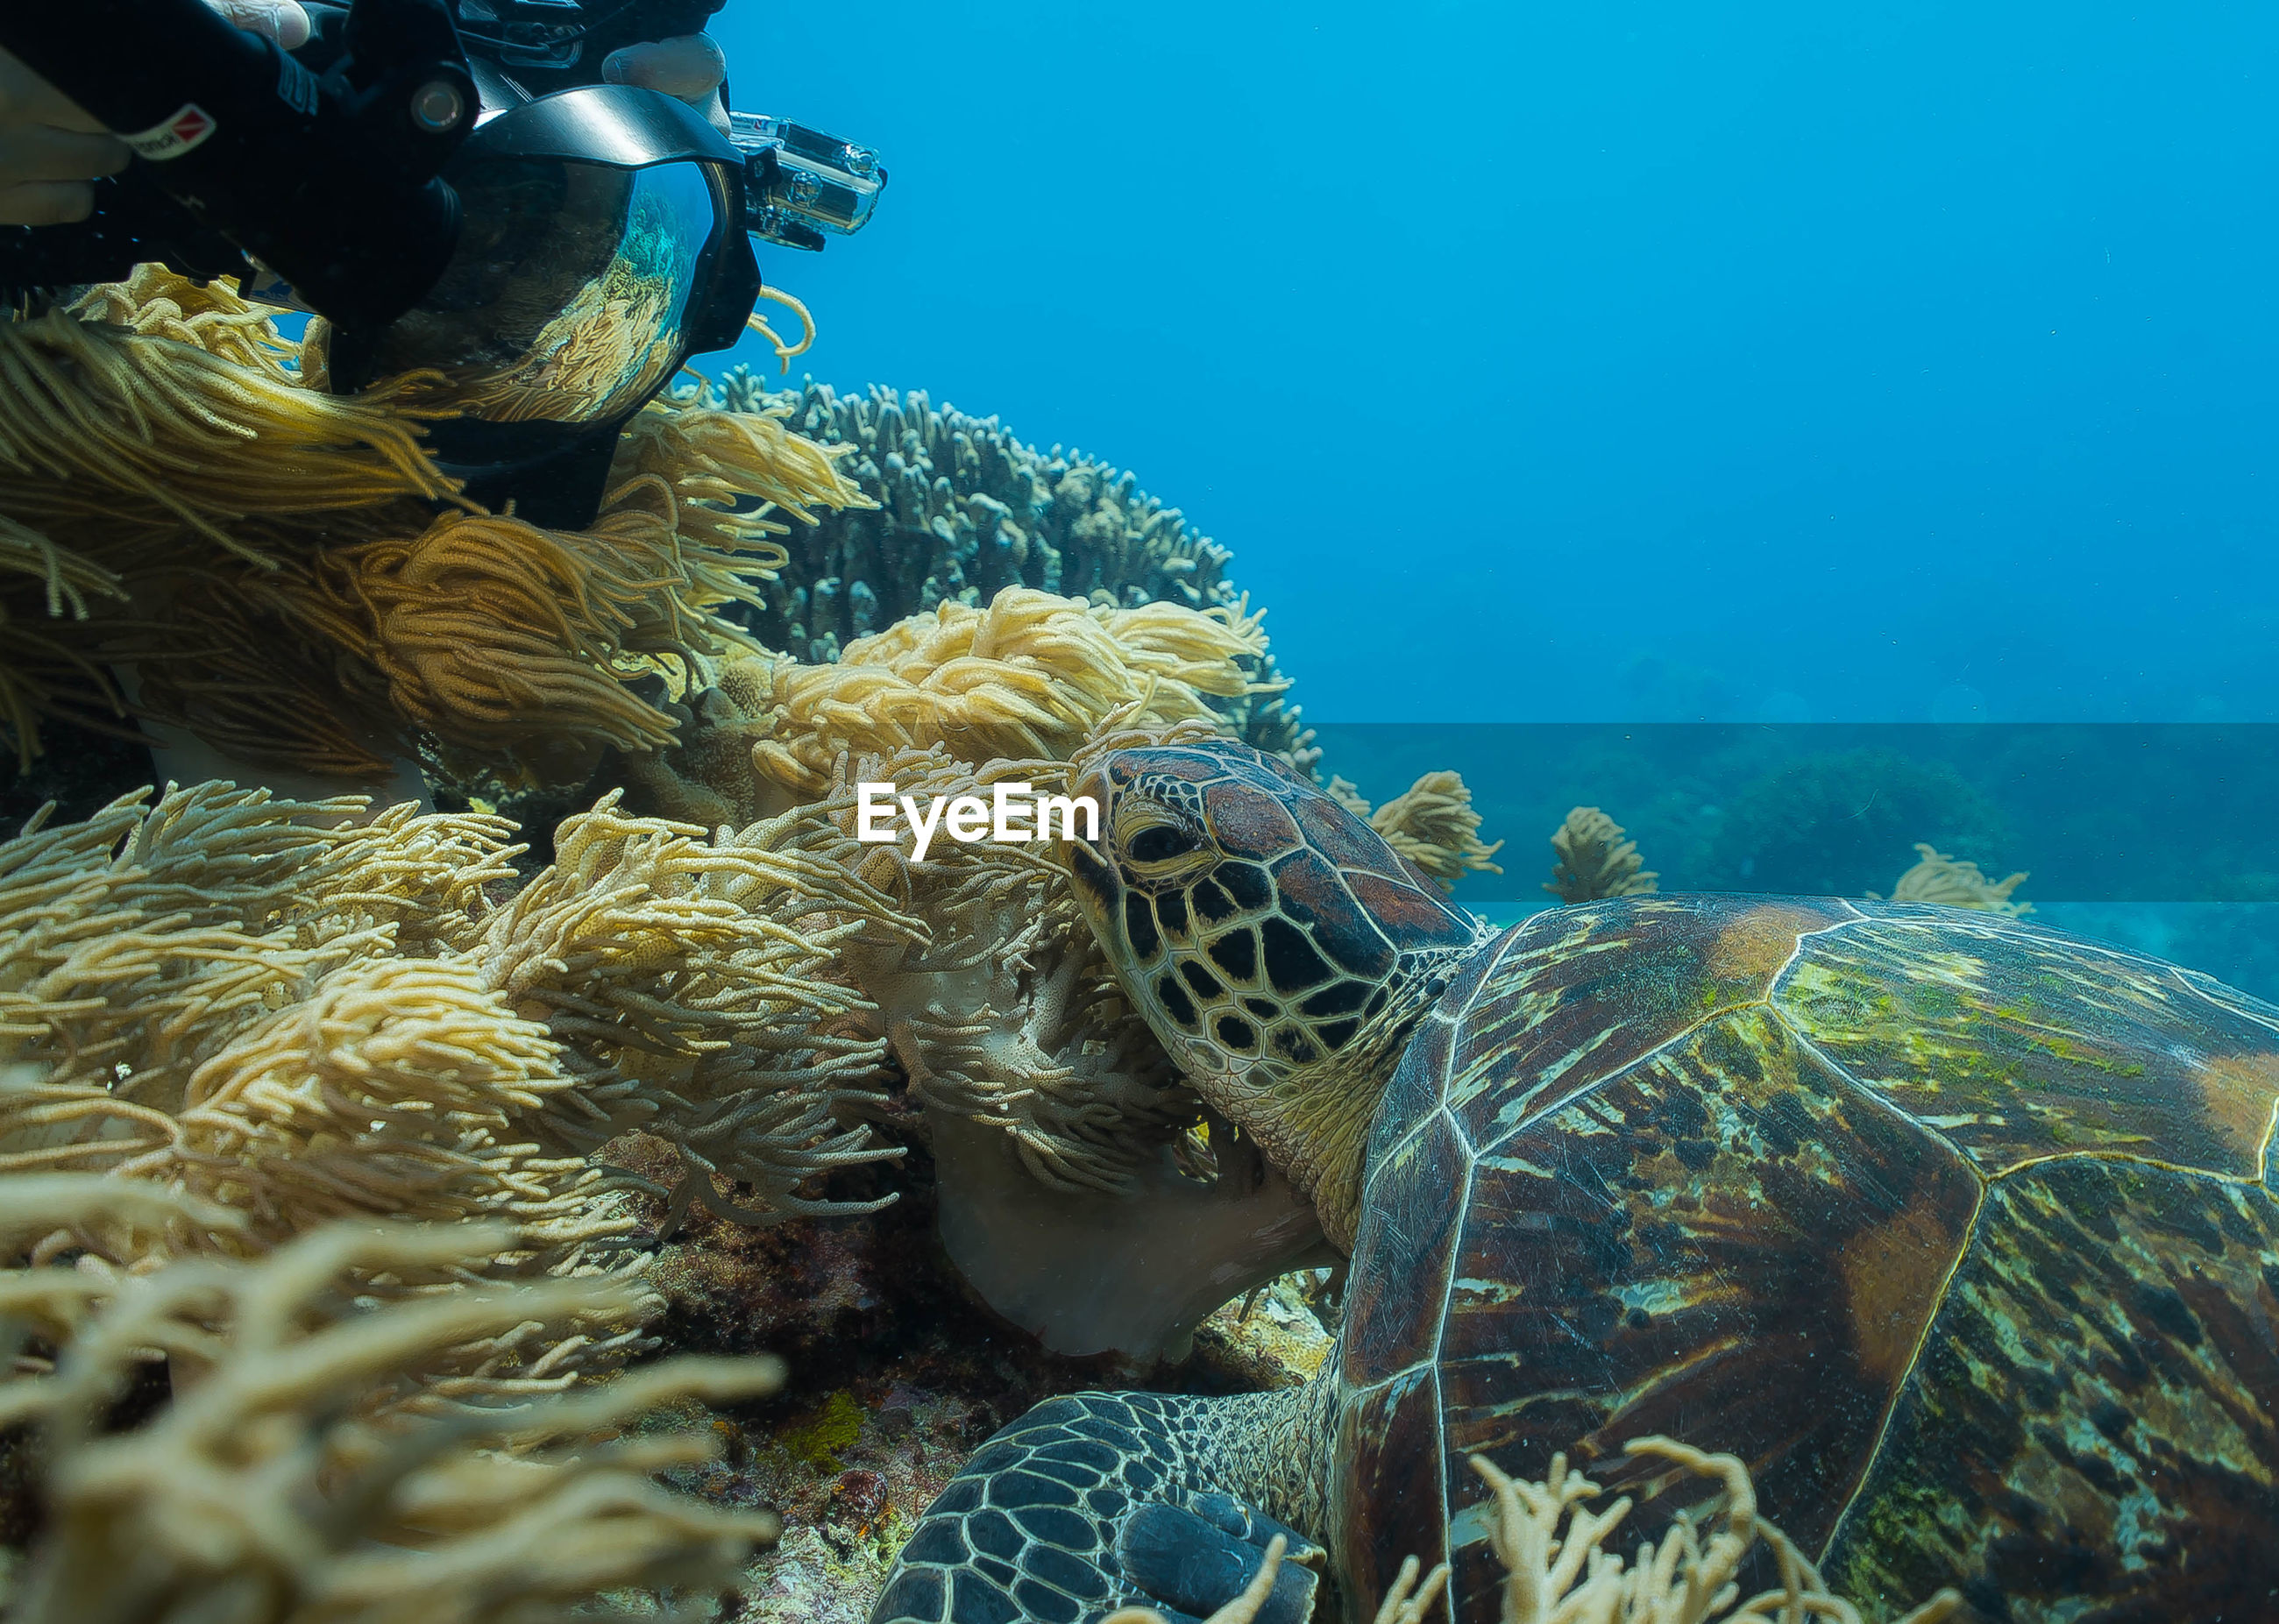 Scuba diver looking at tortoise swimming in sea